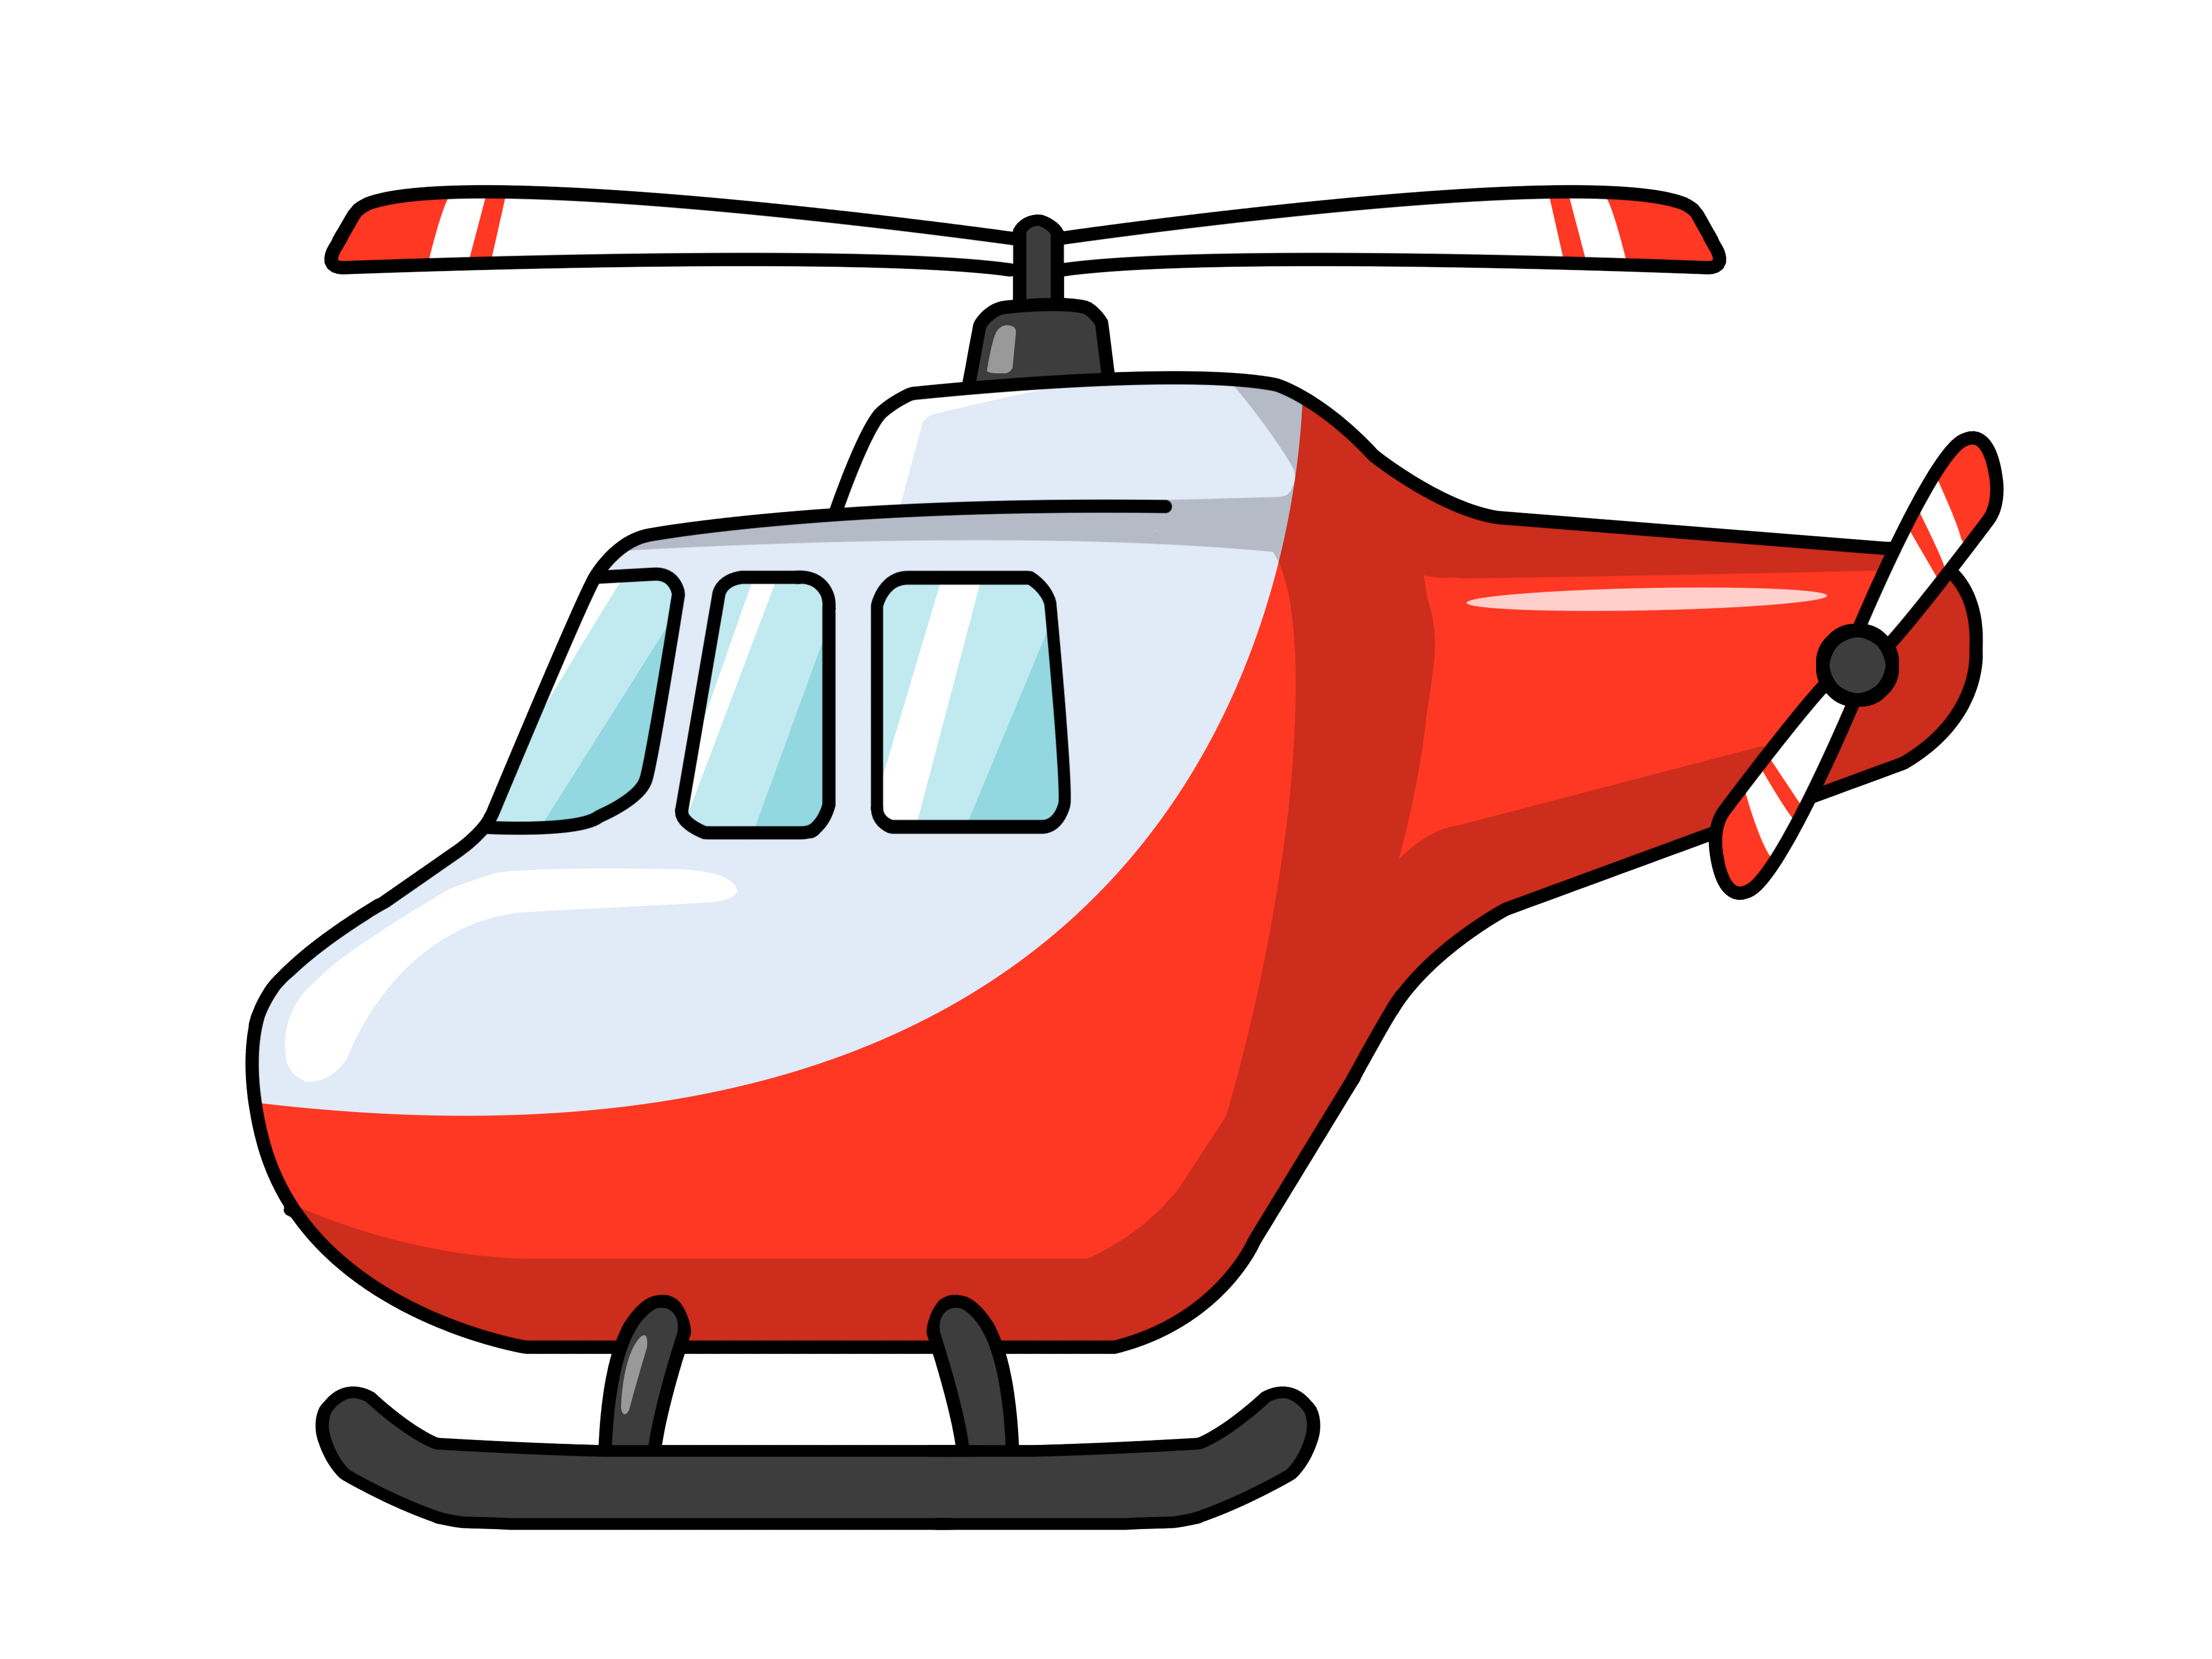 helicopter clip art on clipart panda free clipart images rh clipartpanda com helicopter clipart no background helicopter clipart no background